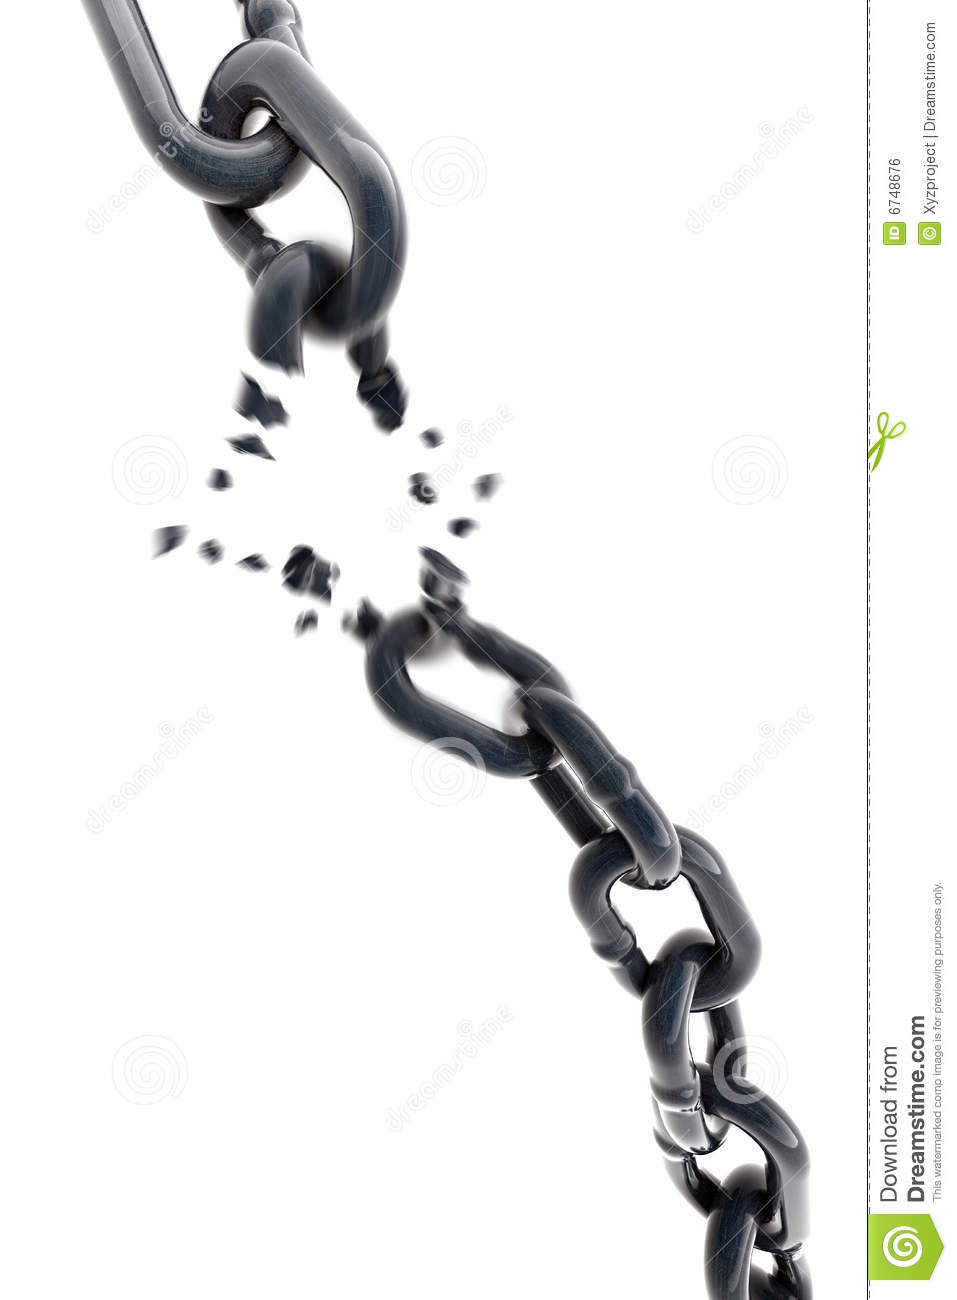 Breaking Chain 3d Royalty Free Stock Image Image 6748676